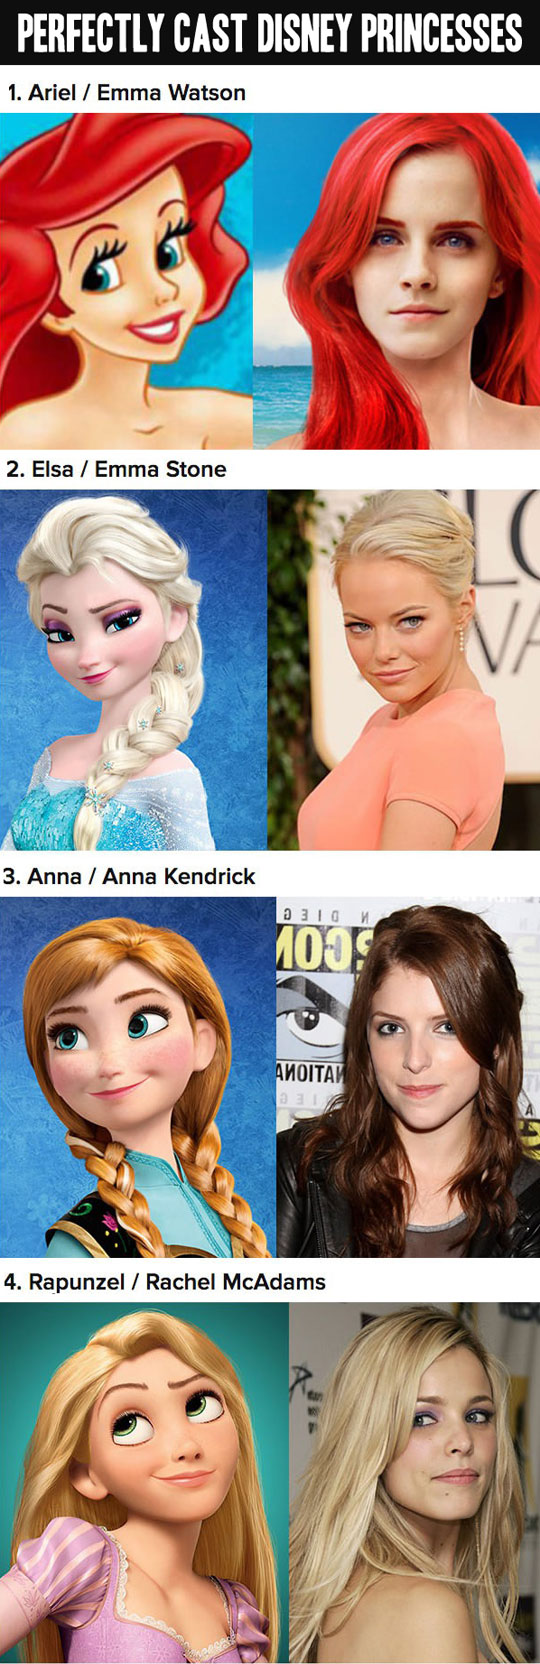 funny-perfectly-cast-actresses-Disney